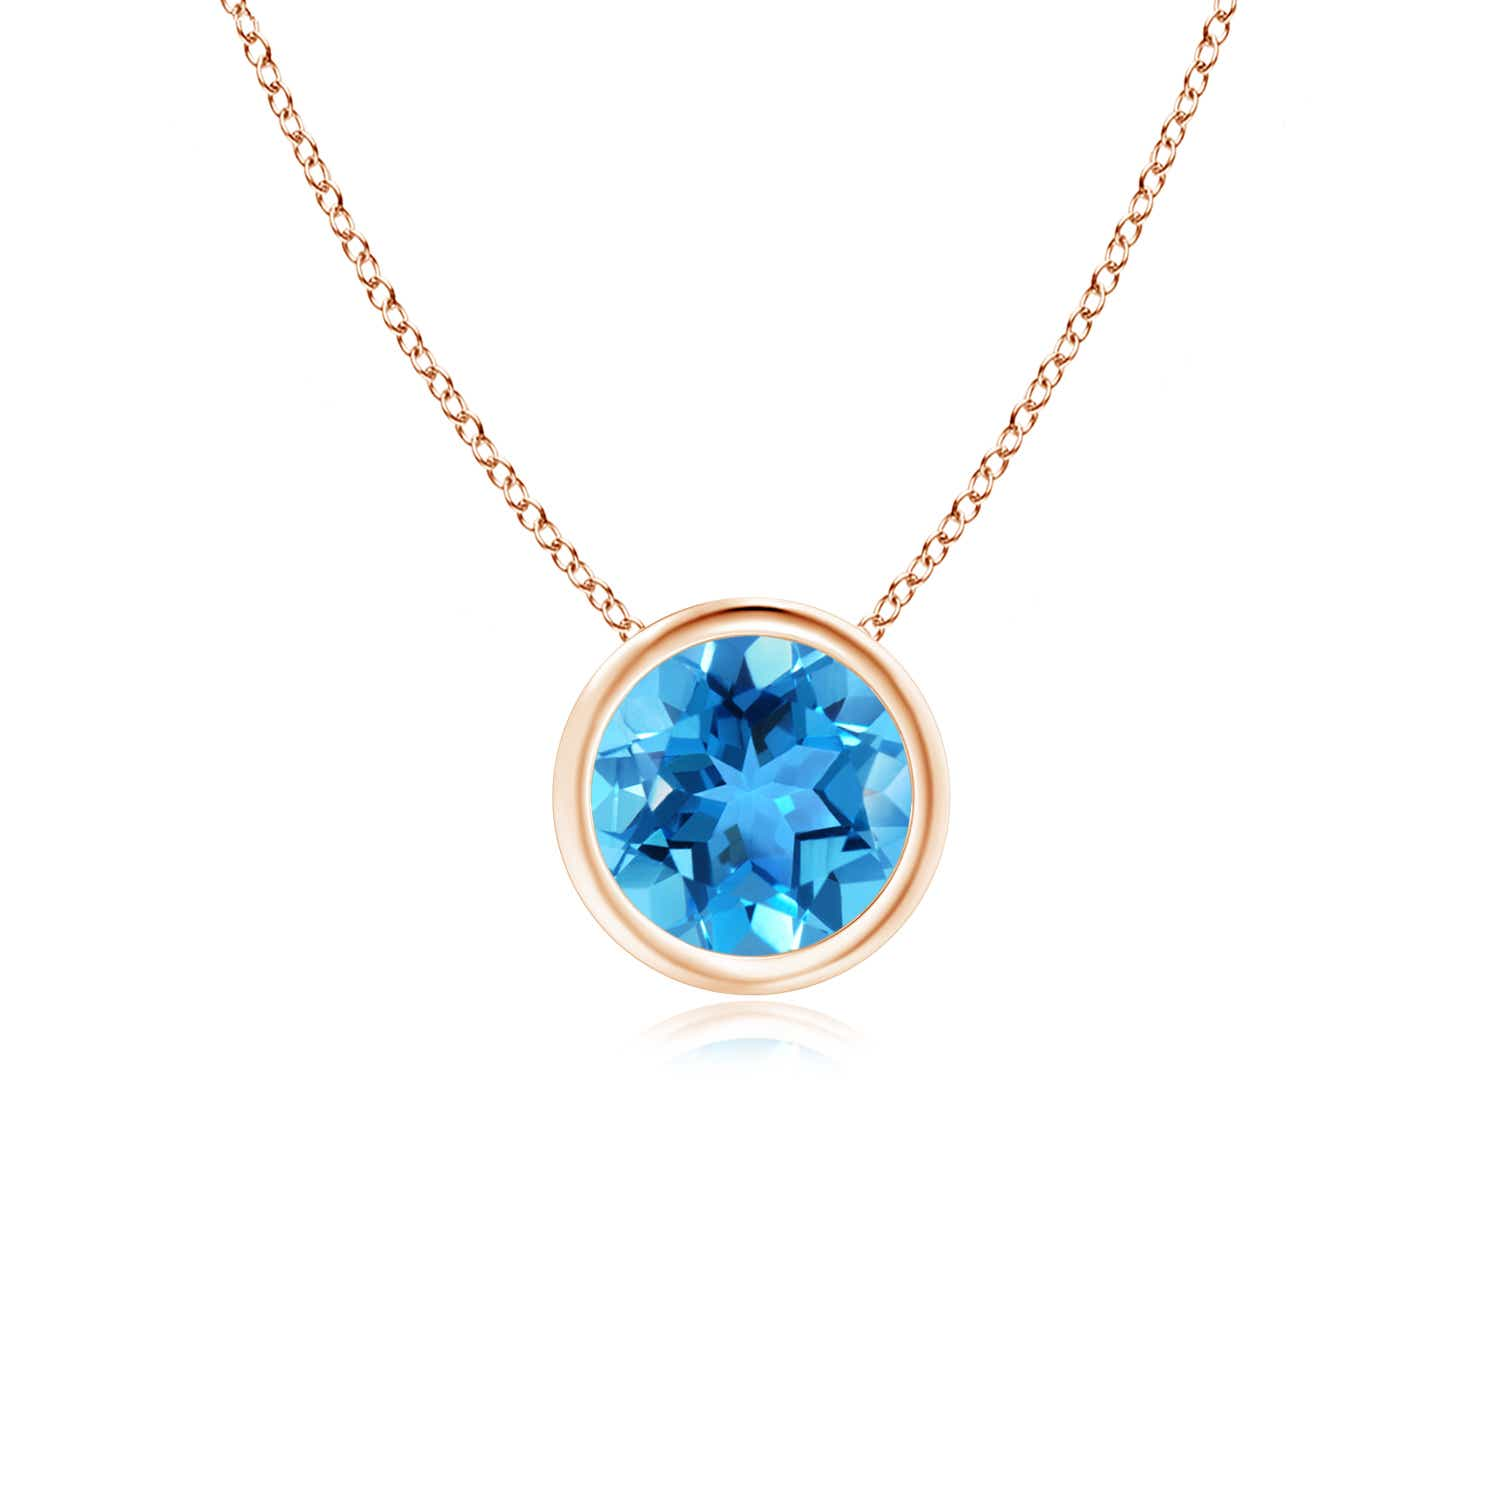 Angara 6mm Round Swiss Blue Topaz Pendant in Rose Gold Tbb7UW